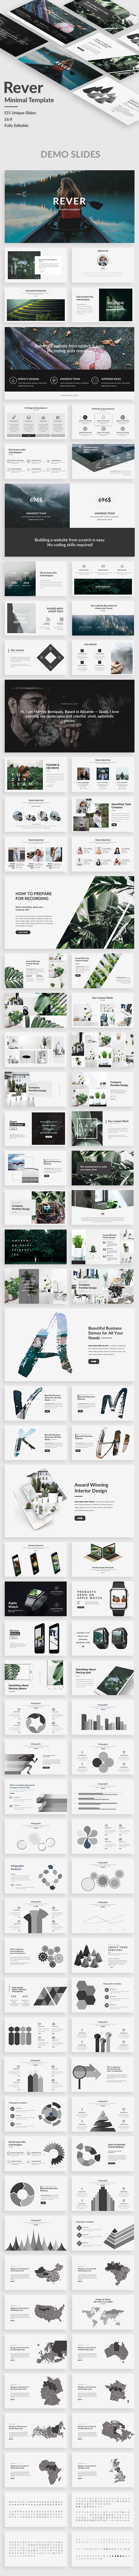 Rever Minimal Premium Powerpoint Template - Creative PowerPoint Templates